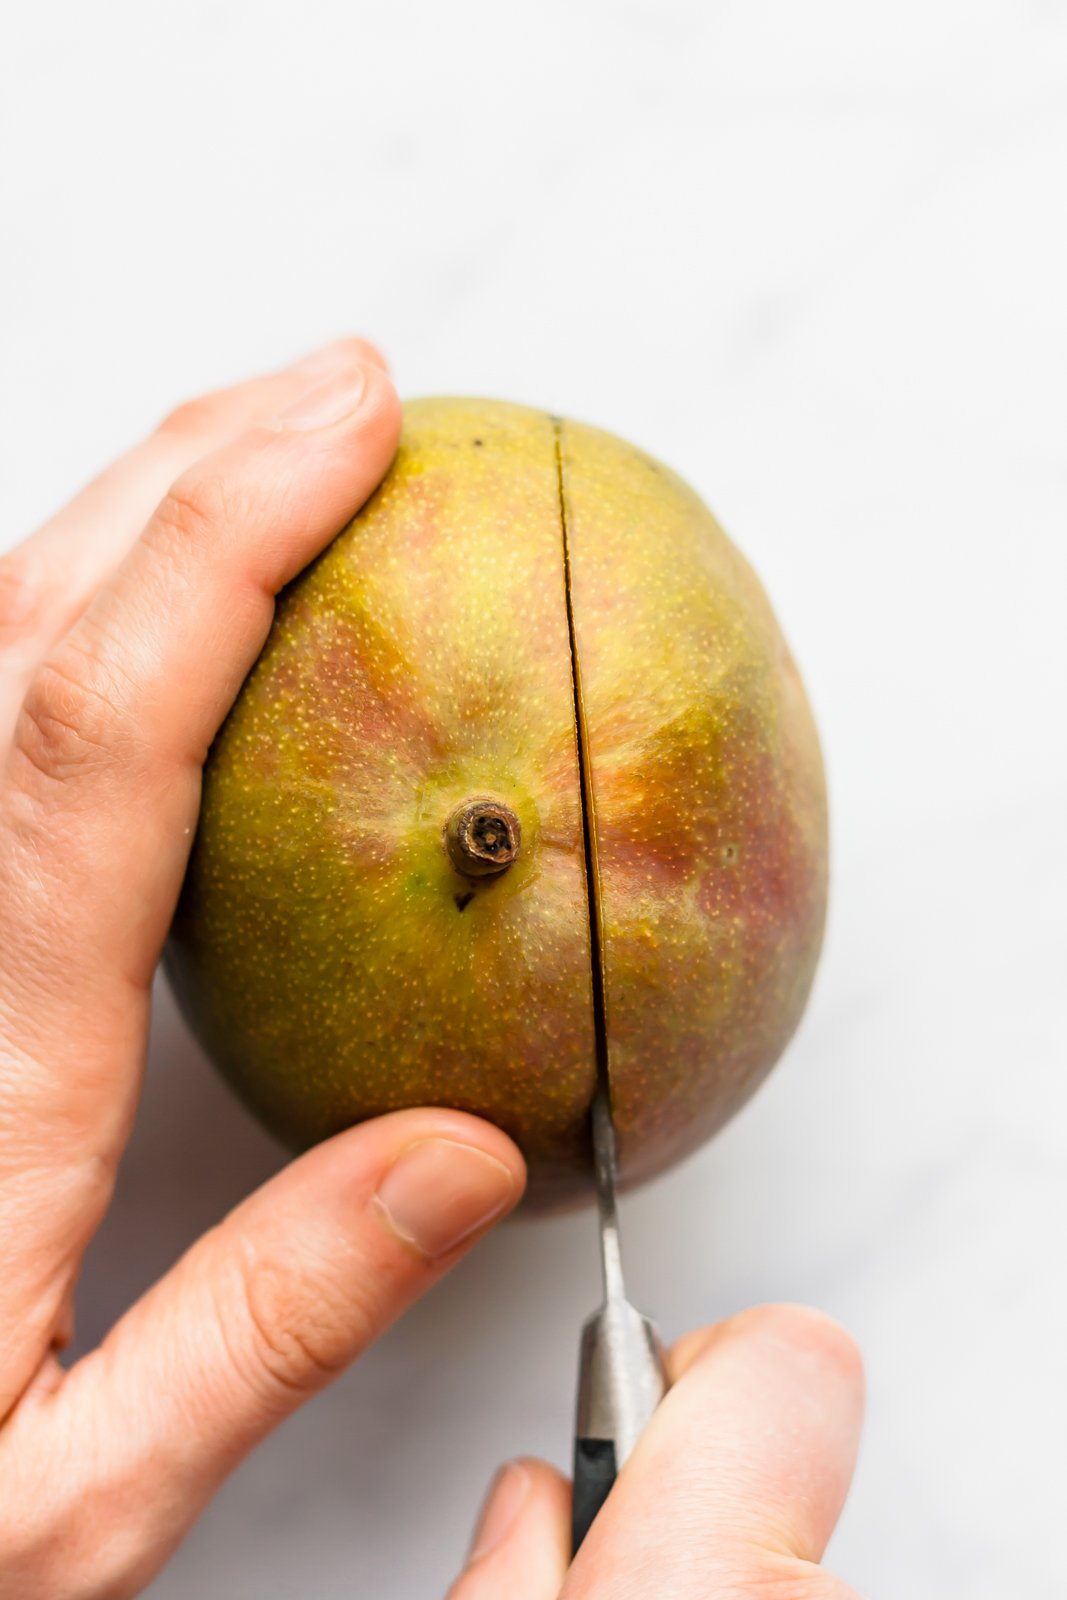 cutting a mango with a knife